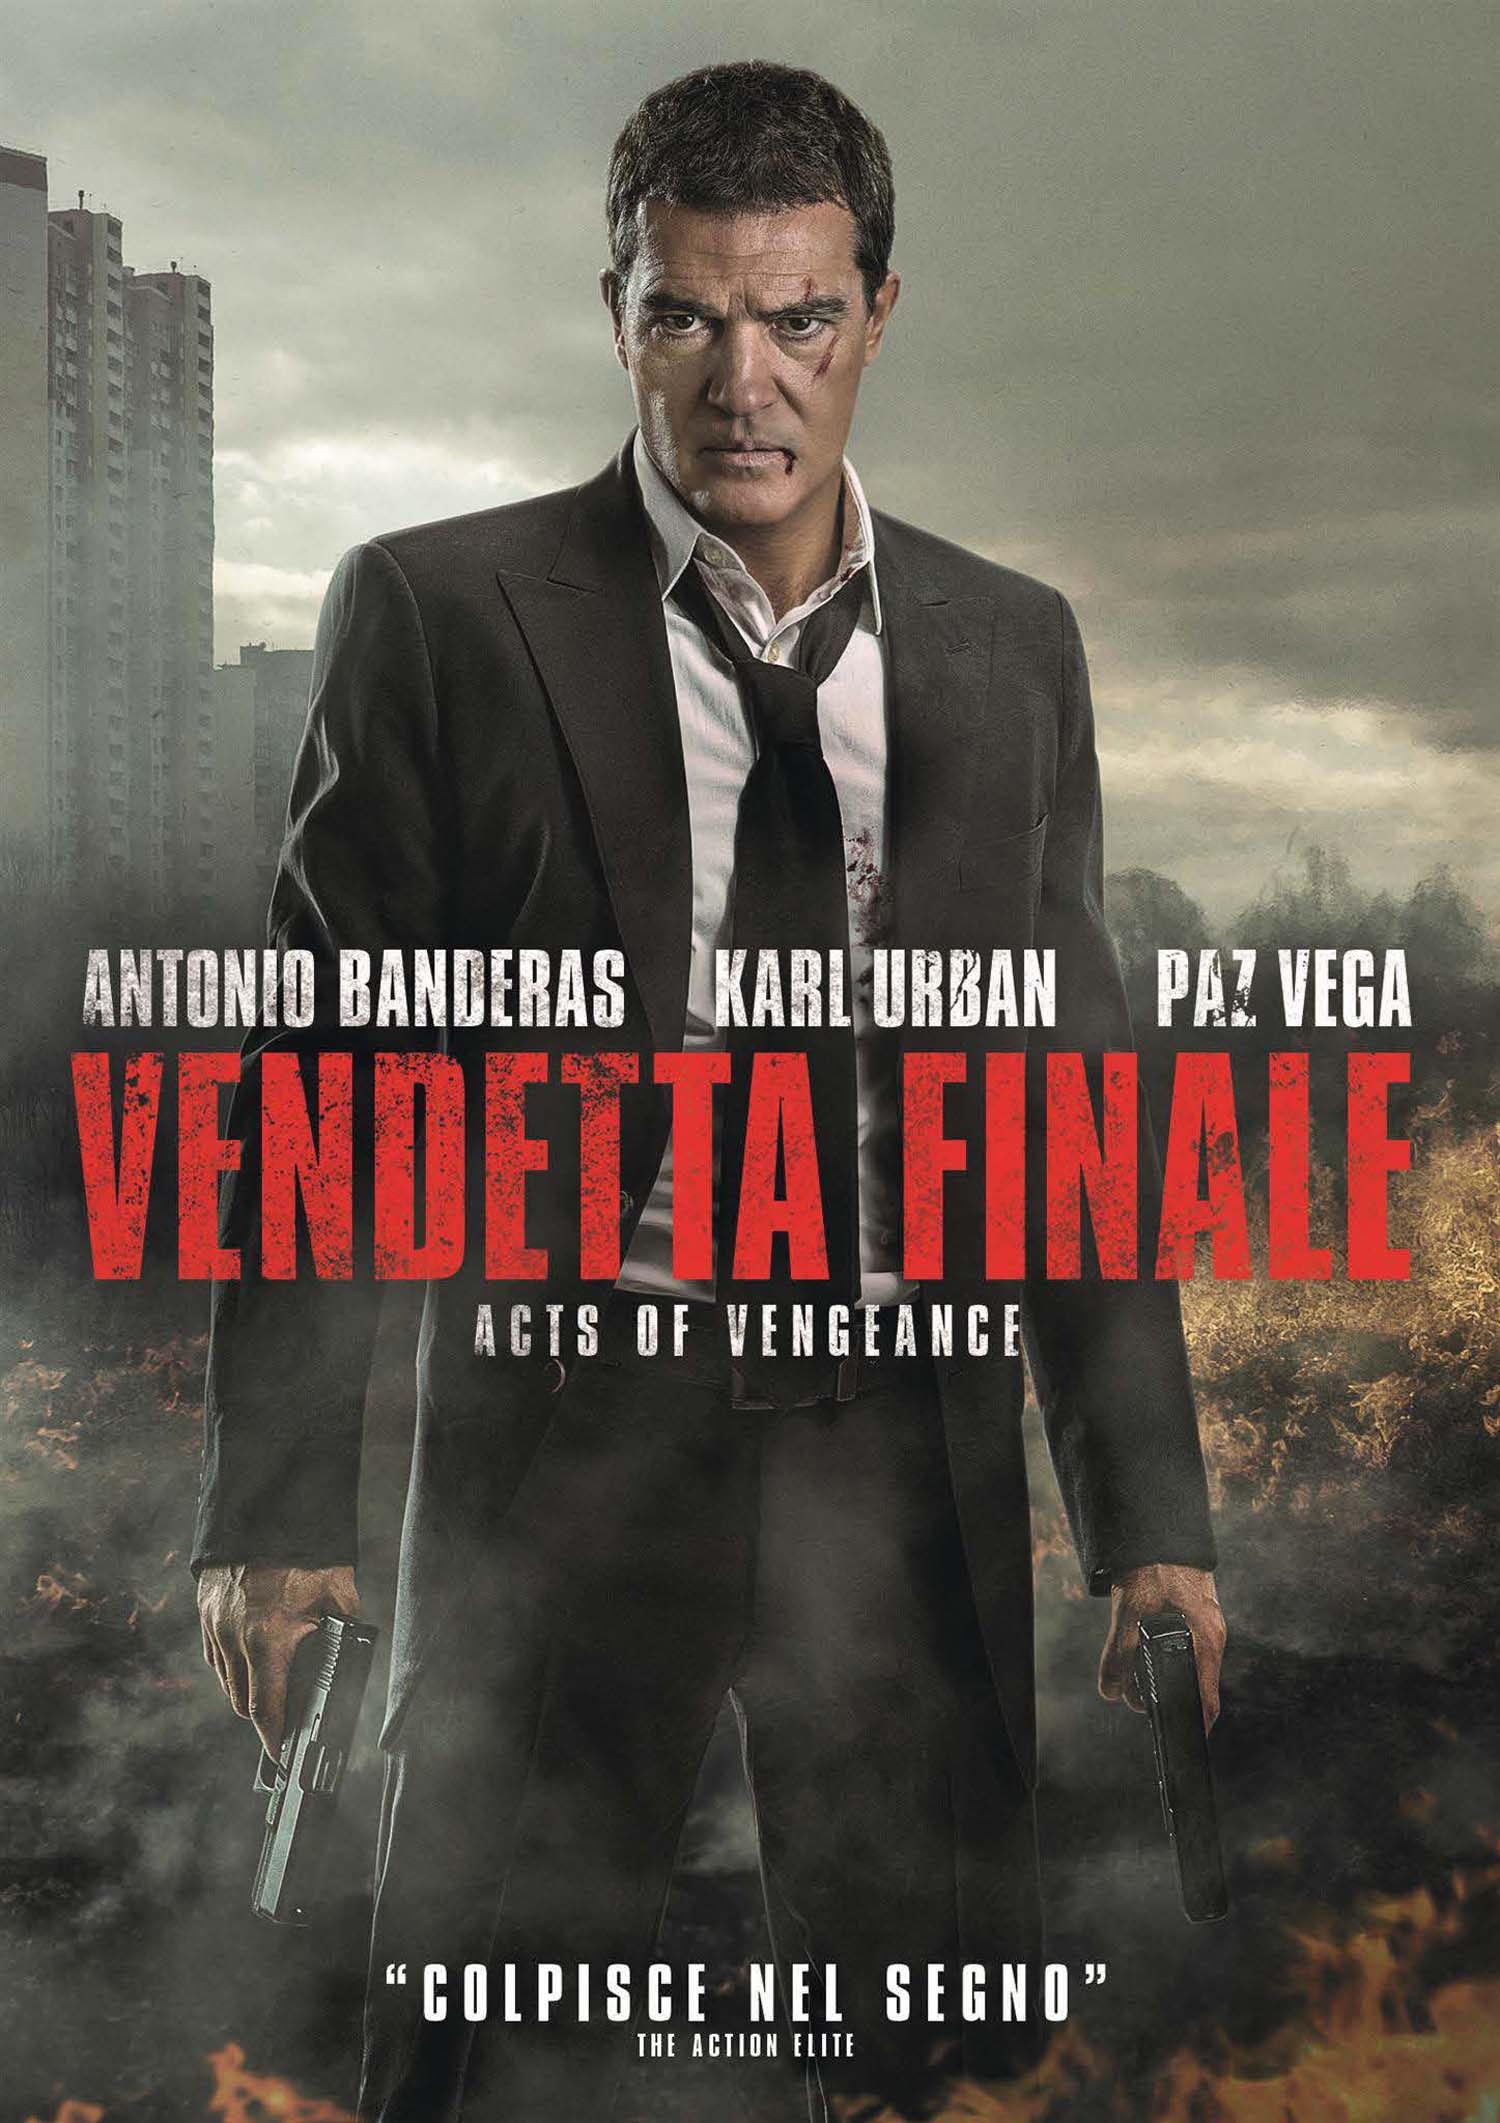 ACTS OF VENGEANCE - VENDETTA FINALE (DVD)